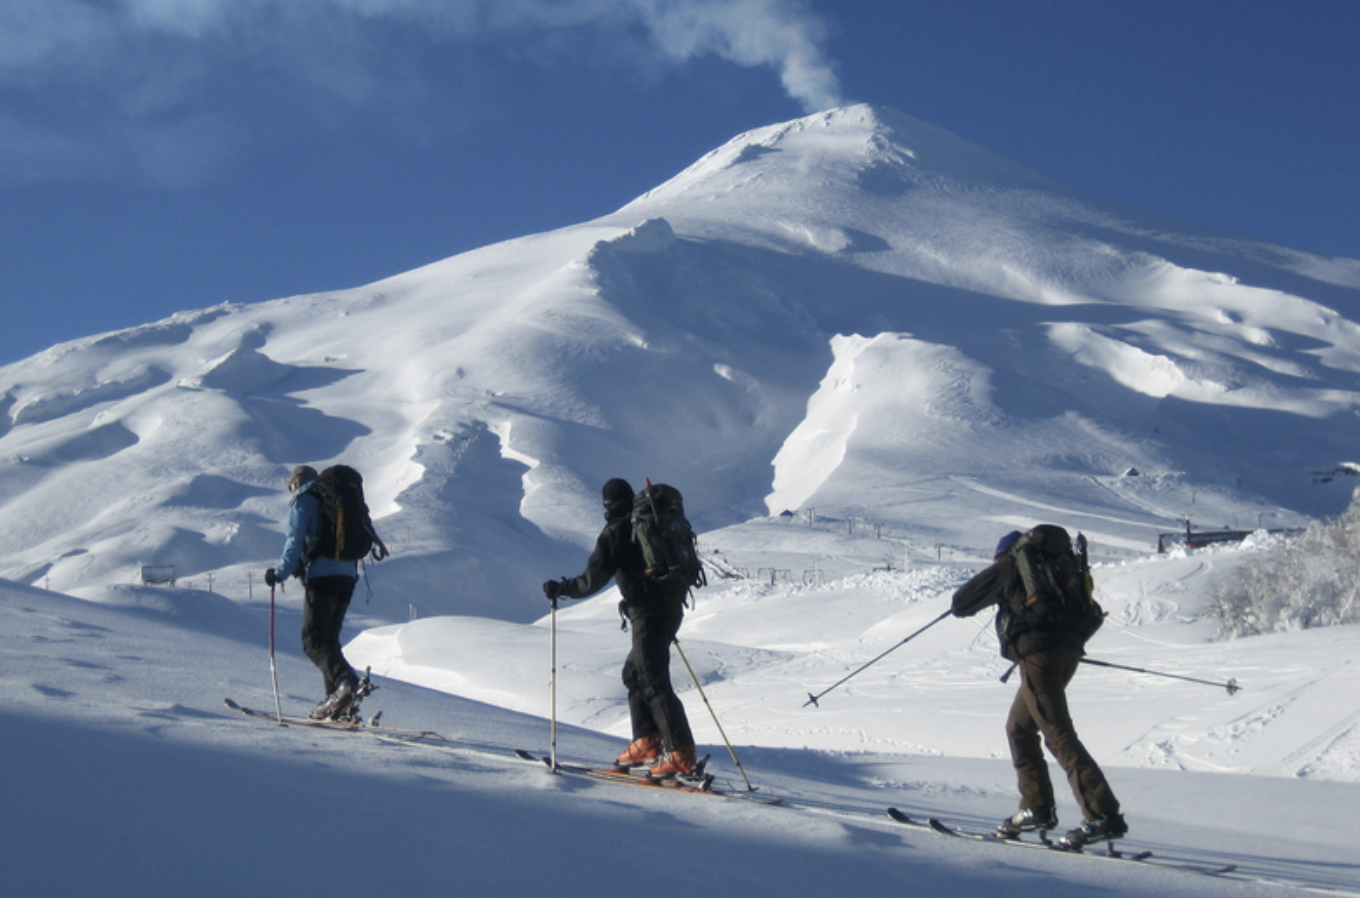 Top 5 ideal ski spots to enjoy winter sports in Chile